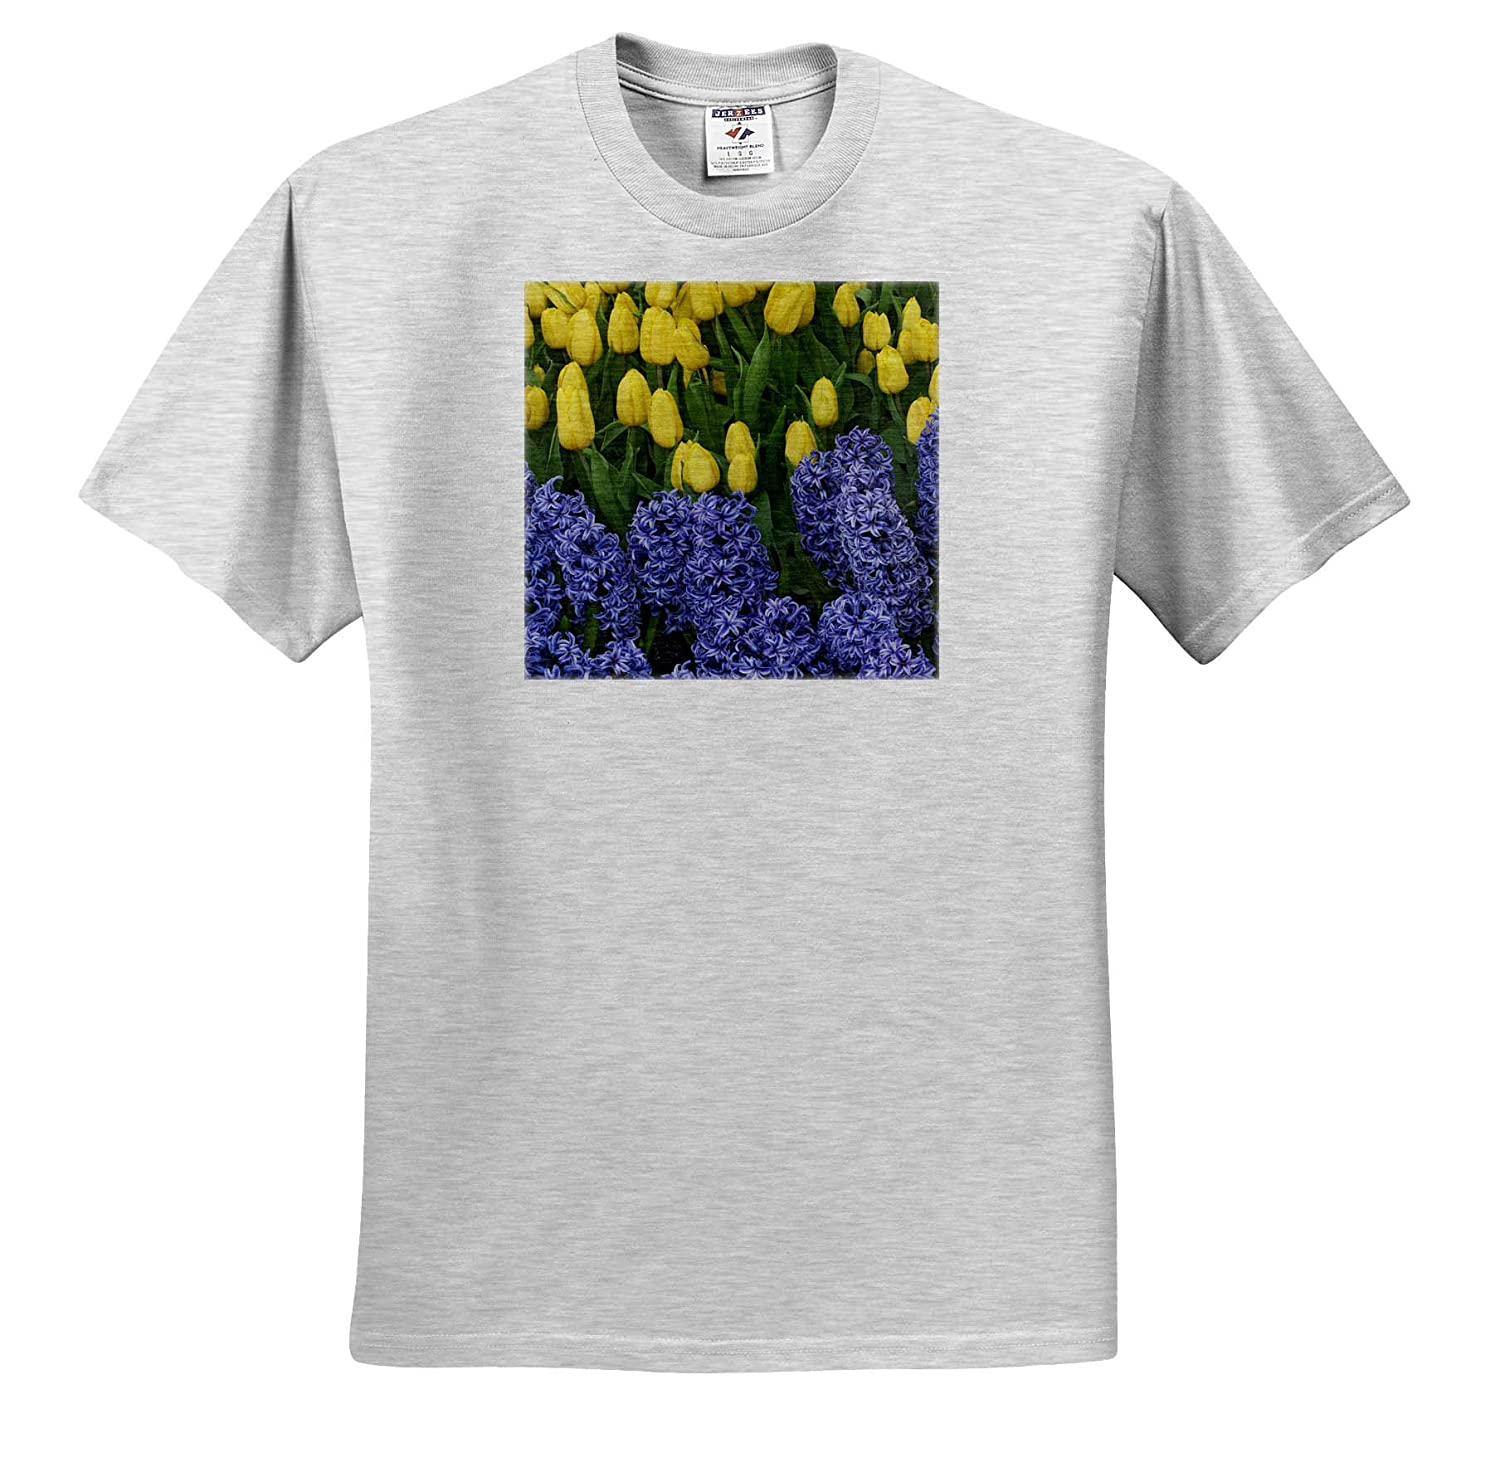 - Adult T-Shirt XL Hyacinth and Yellow Tulips in Garden Flowers ts/_314930 3dRose Danita Delimont